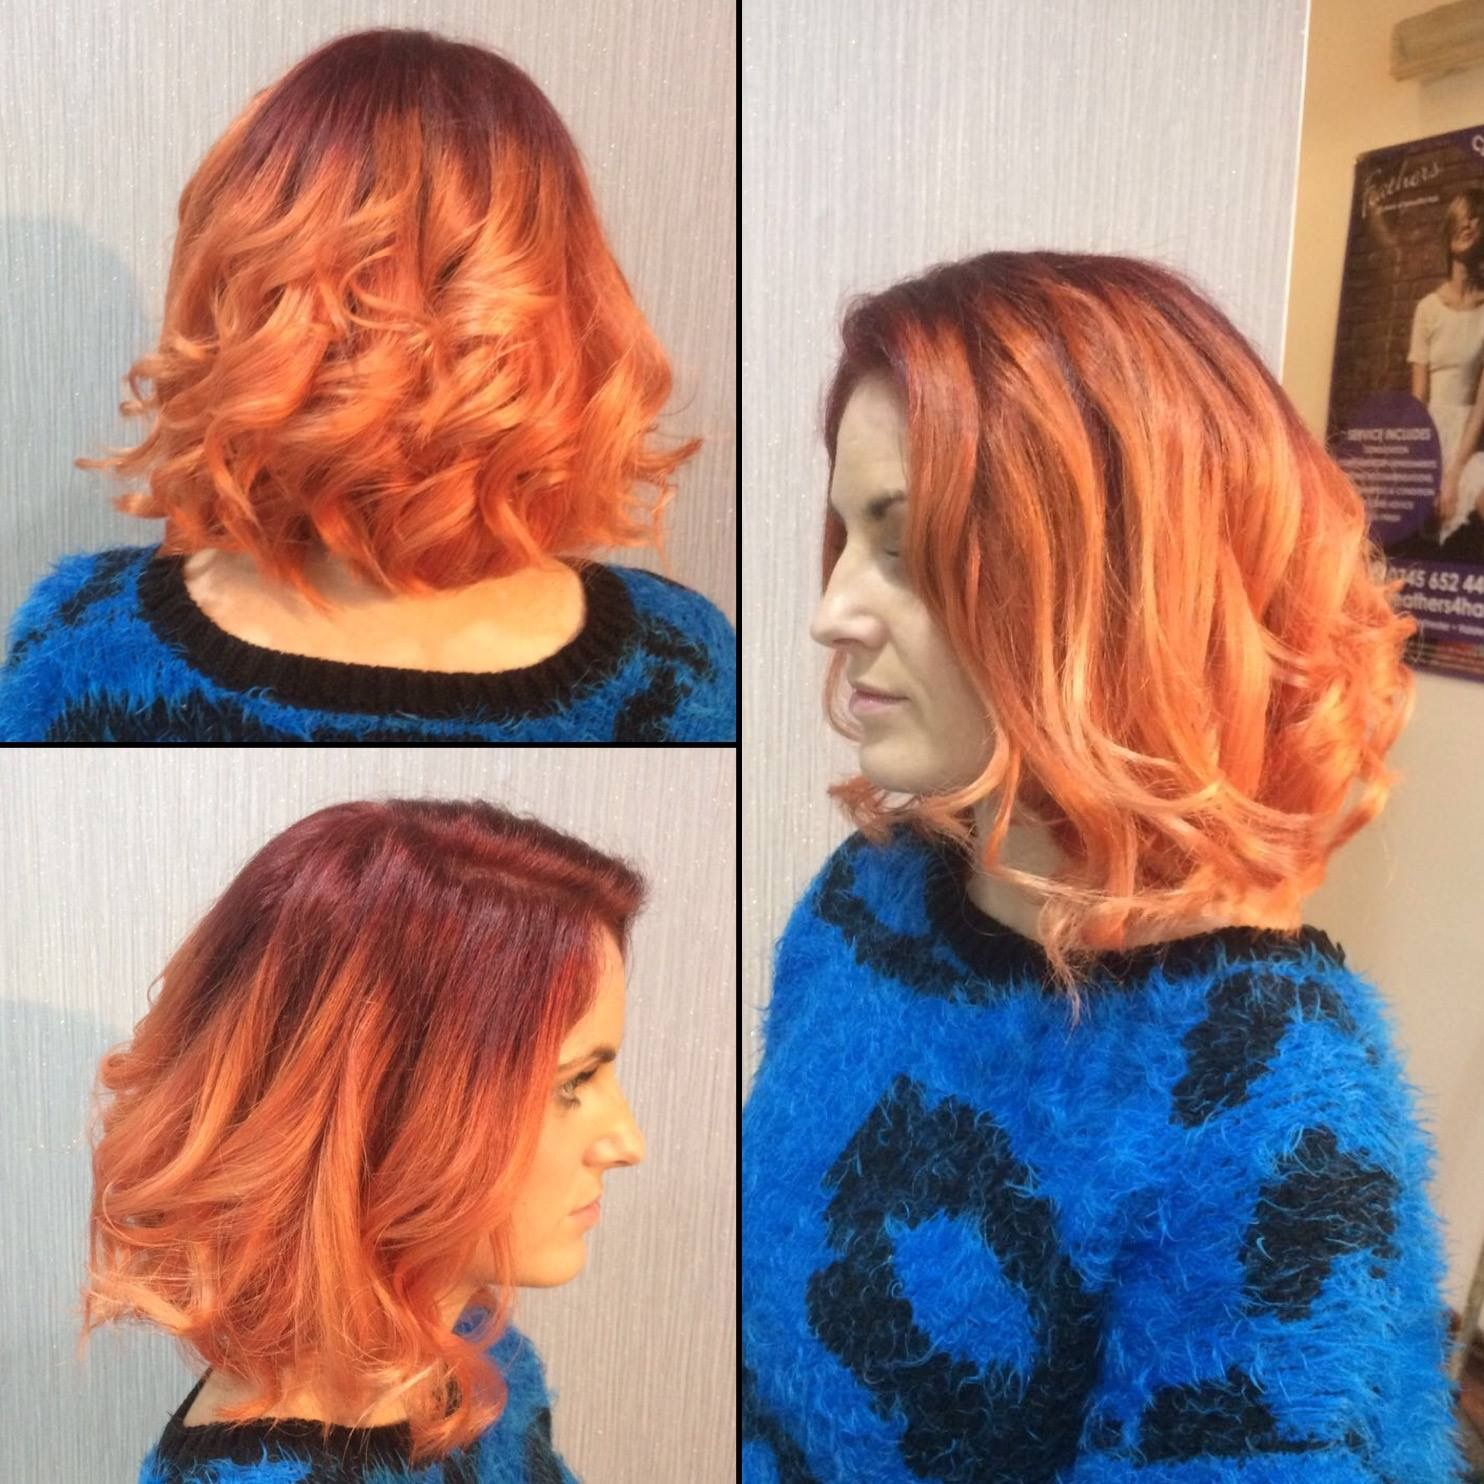 Anyone looking for something different? This fire ombré is